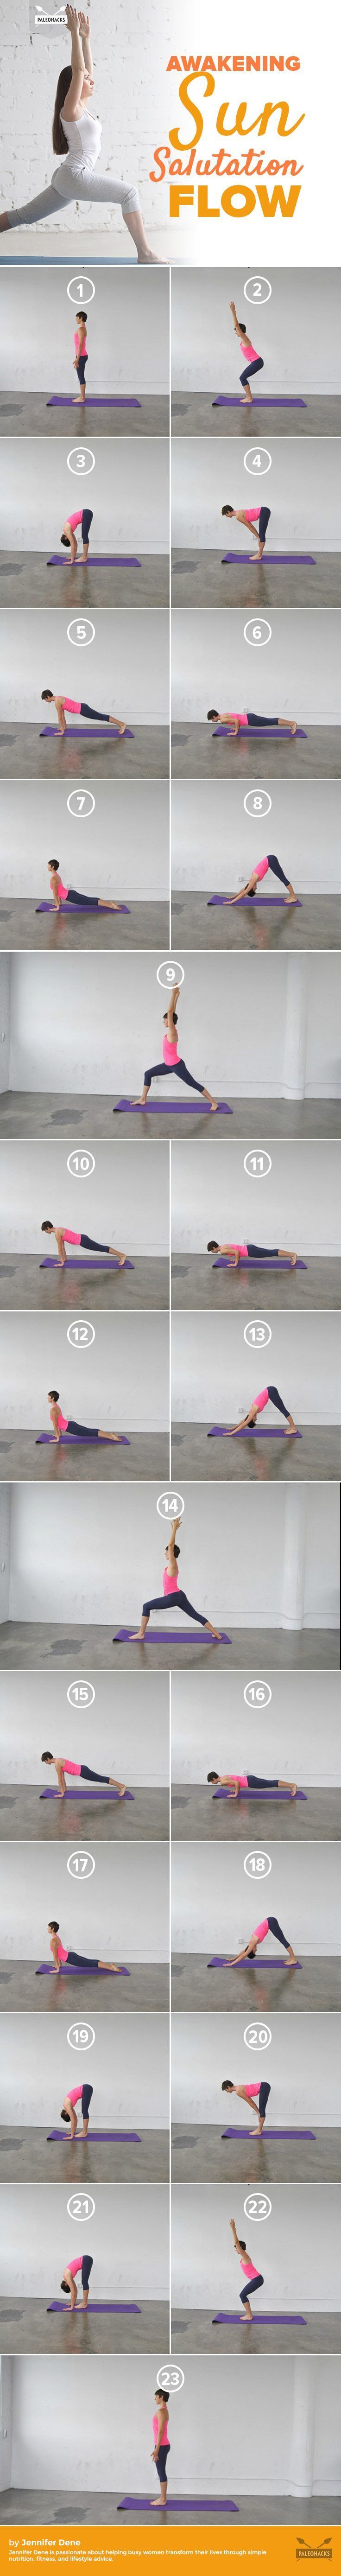 Strengthen and stretch your entire body with this energizing sun salutation. Below, I'll walk you through how you can do this traditional sequence to soothe your mind and keep your body in shape. For the full yoga guide, visit us here: http://paleo.co/sunsalutationflow